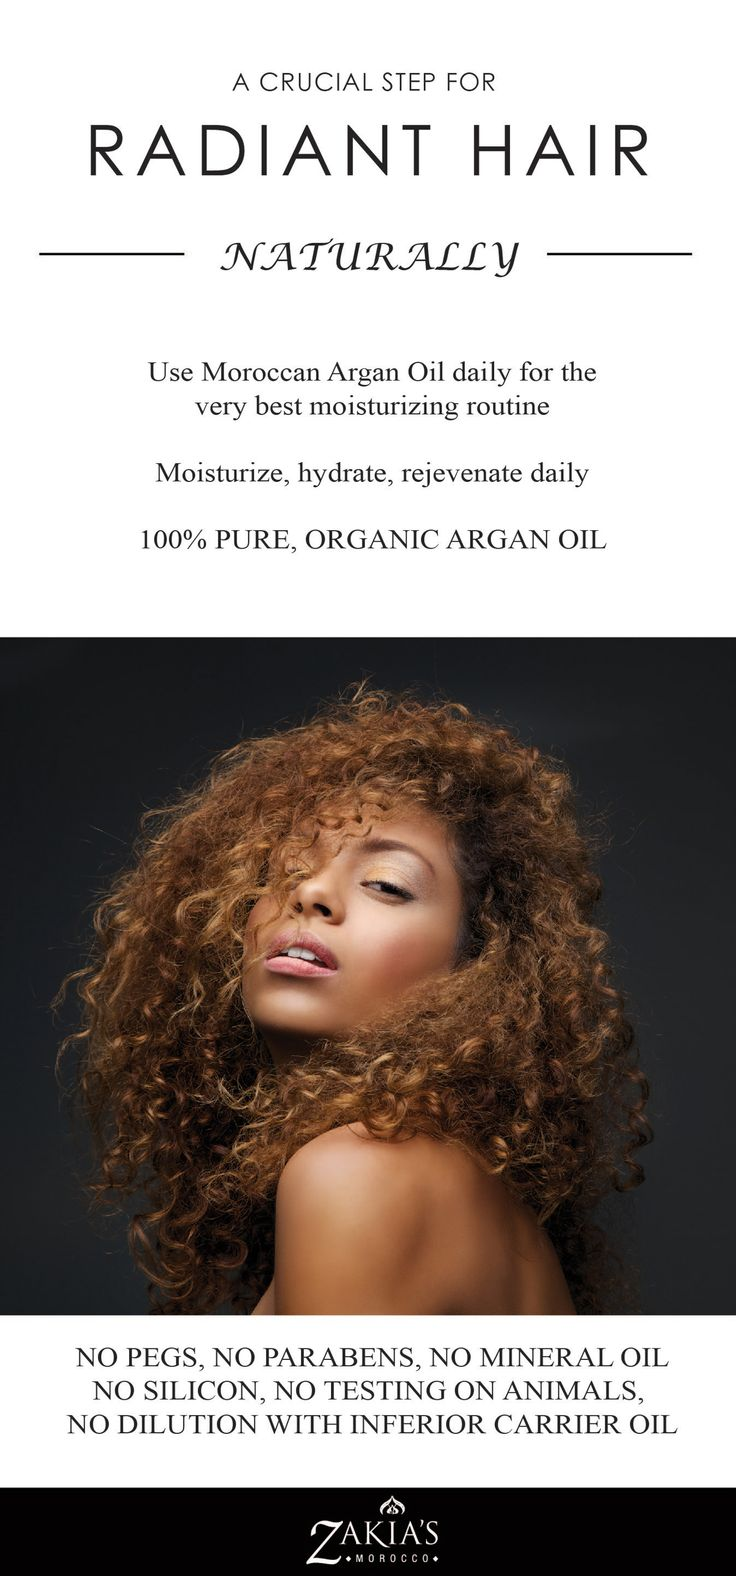 You have all heard of Moroccan Oil.  100% pure, organic and deodorized - don't settle for anything less. You will have healthy radiant hair - always.  You can find it at www.zakiasmorocco.com